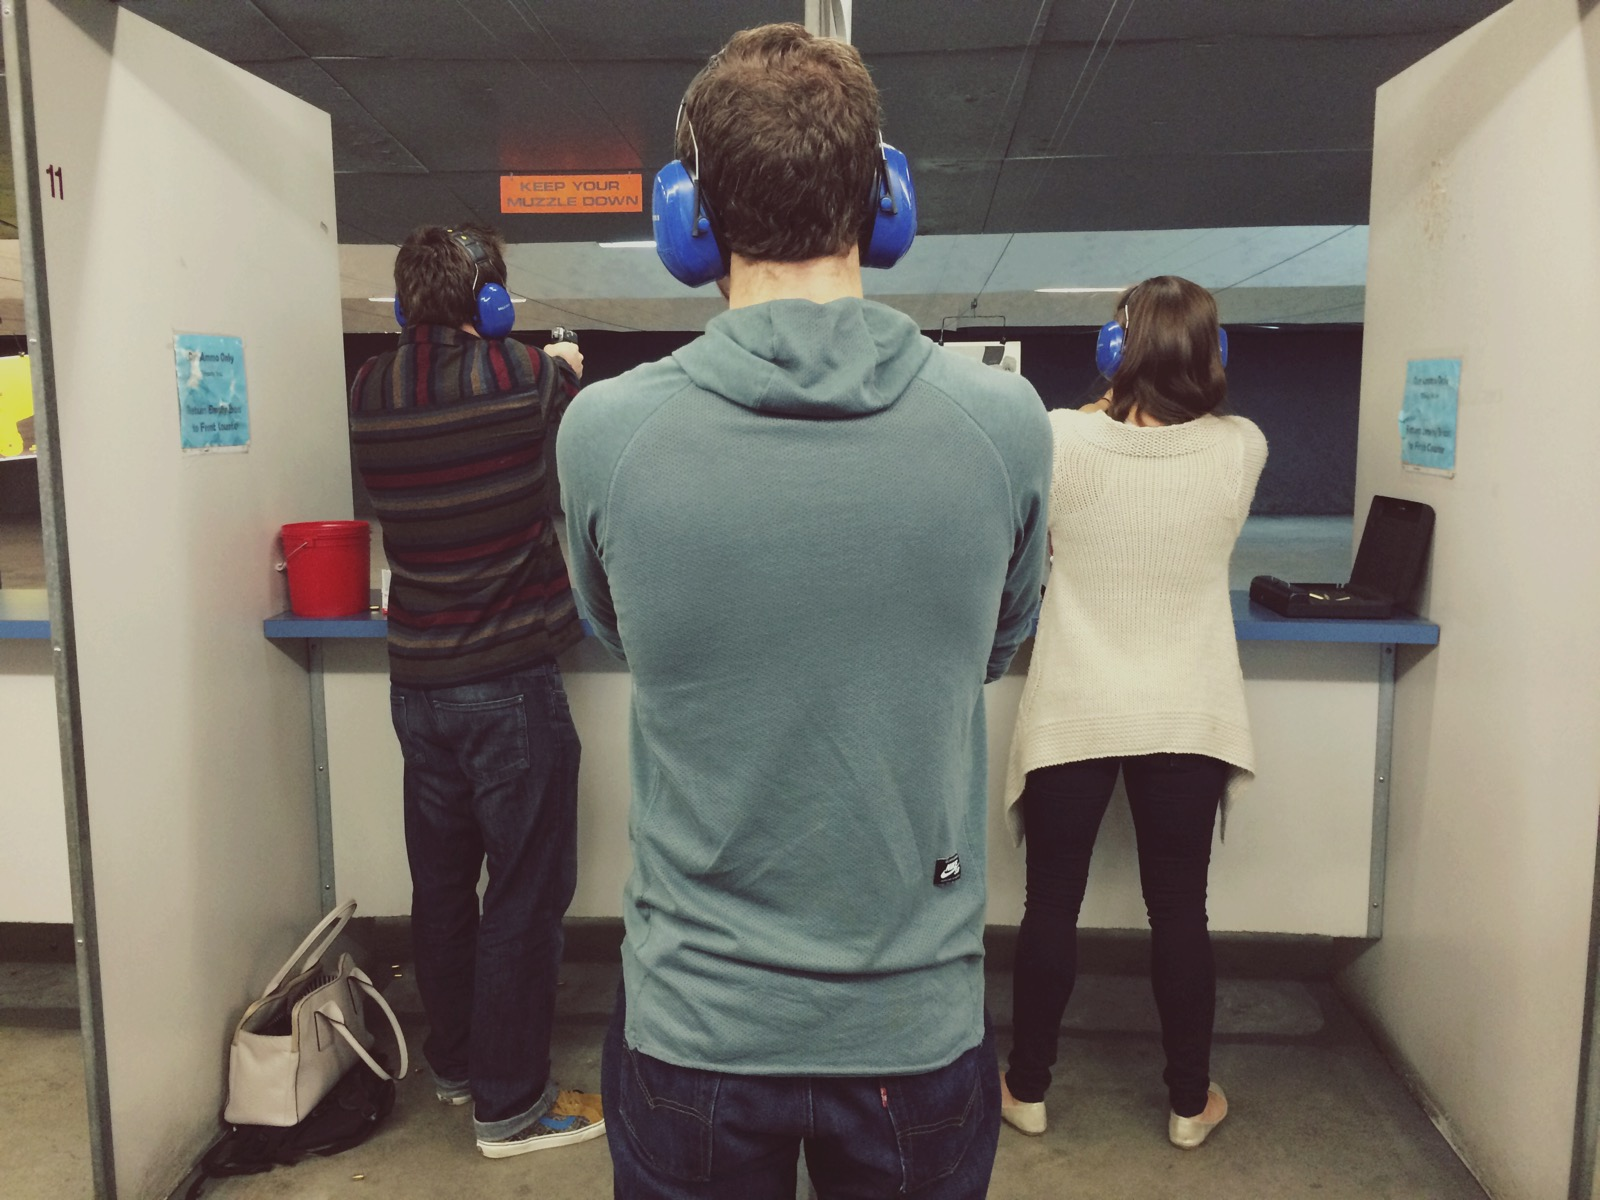 Marsh took me to the shooting range with Jordan and Annica